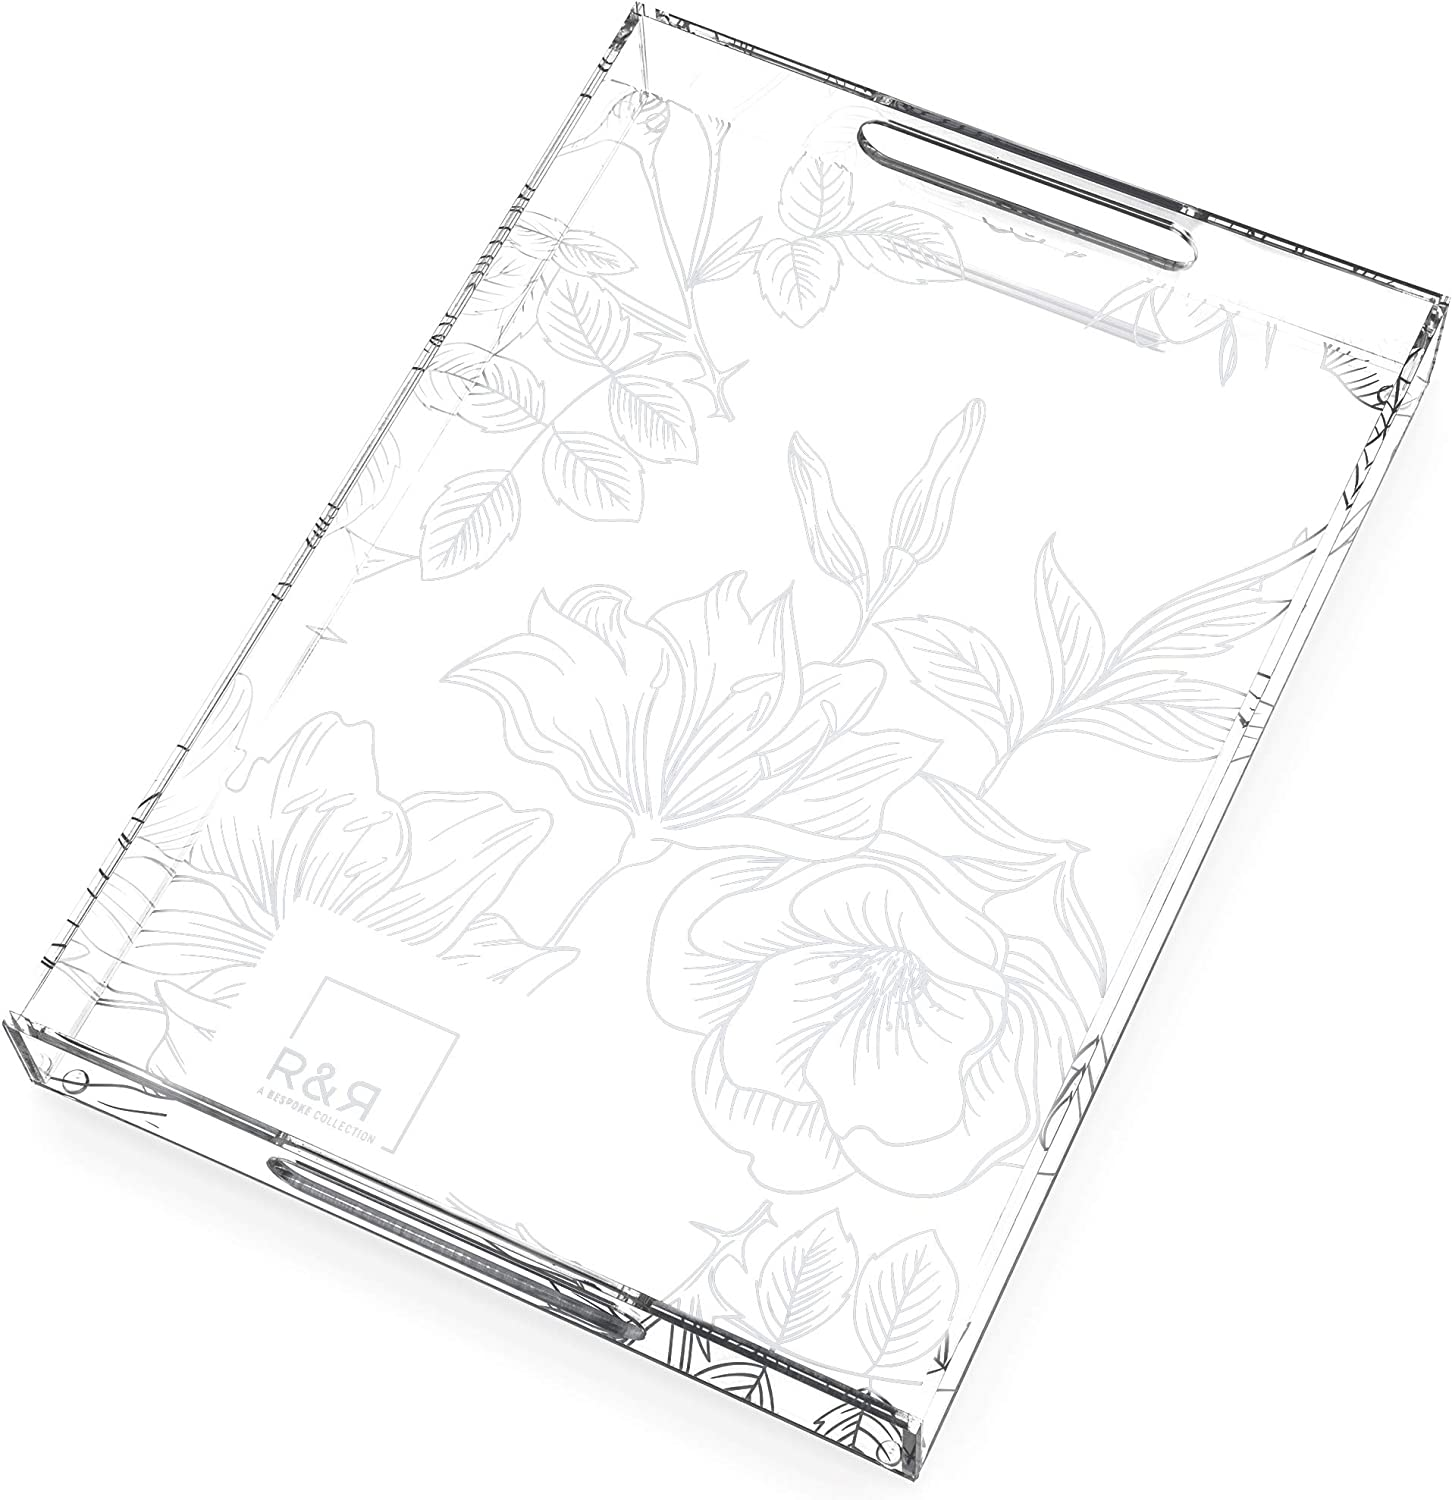 R&R Clear Acrylic Tray with Handles - 17